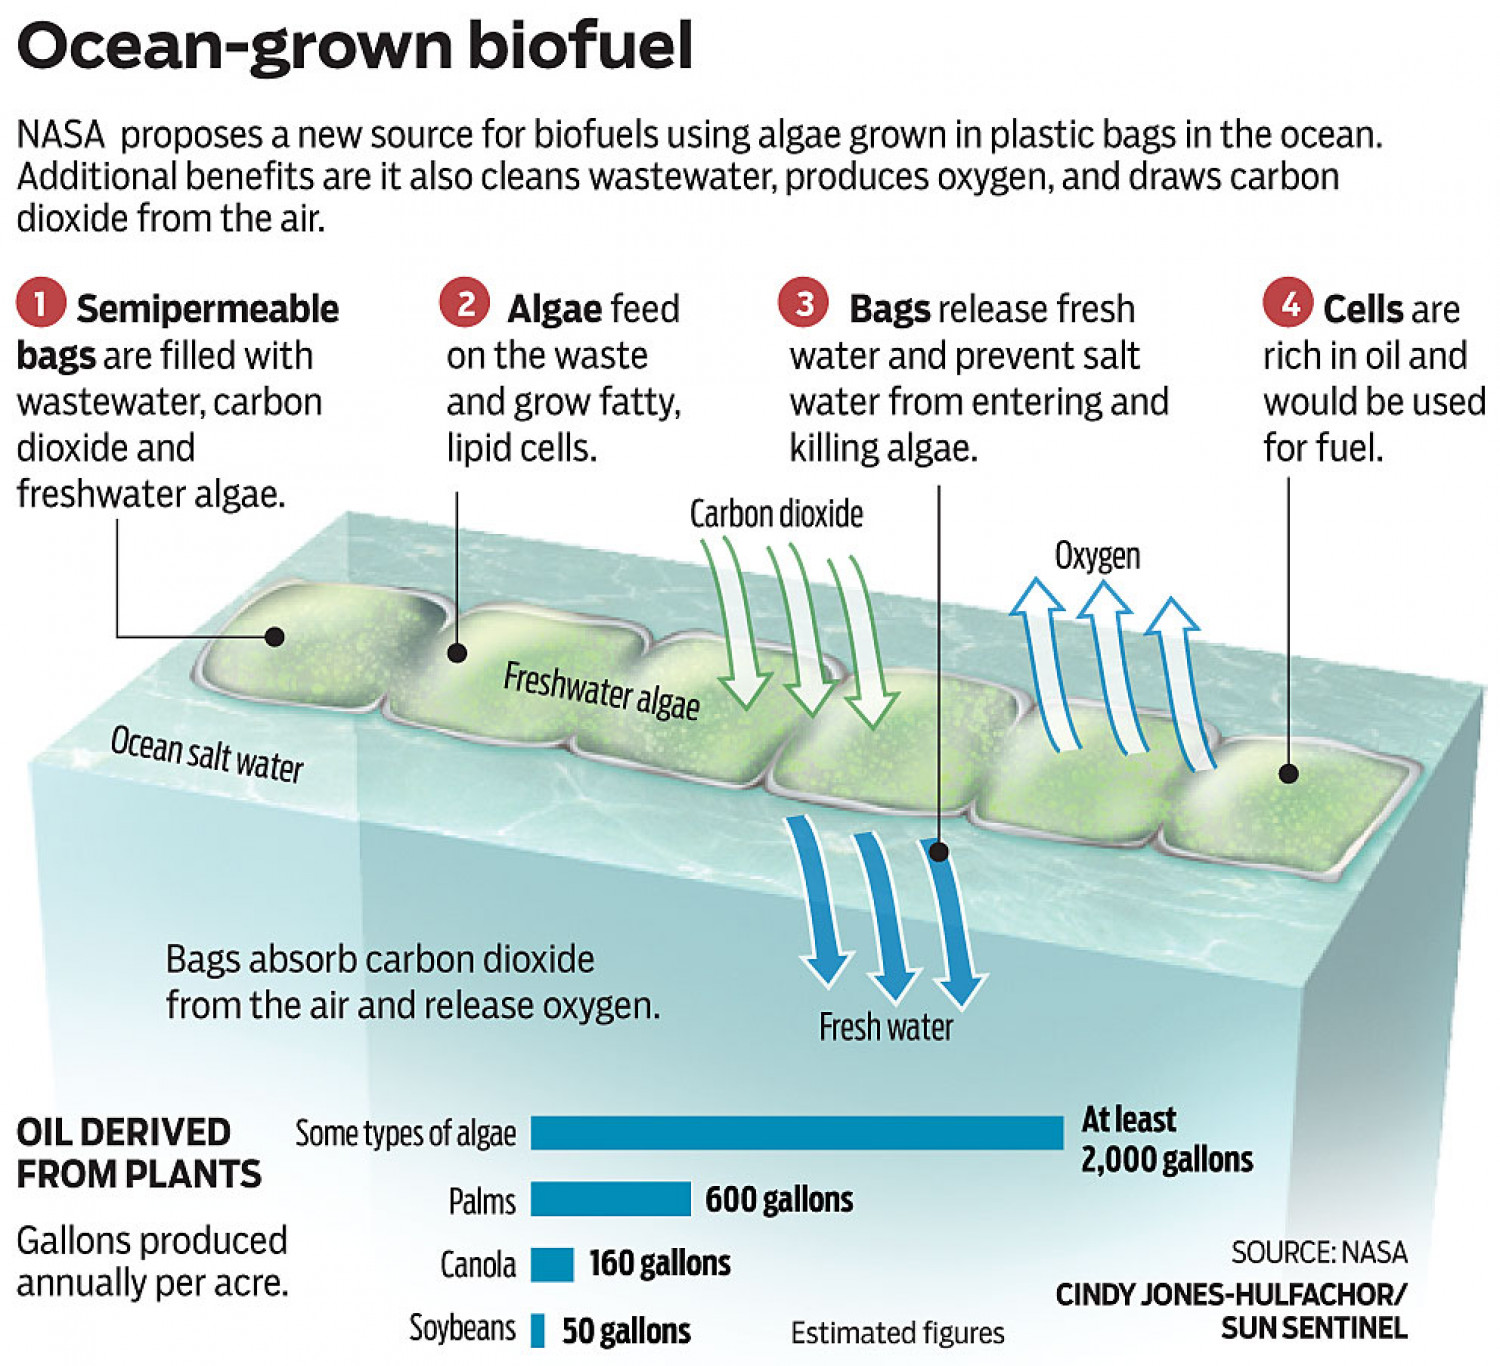 Ocean-grown biofuel Infographic